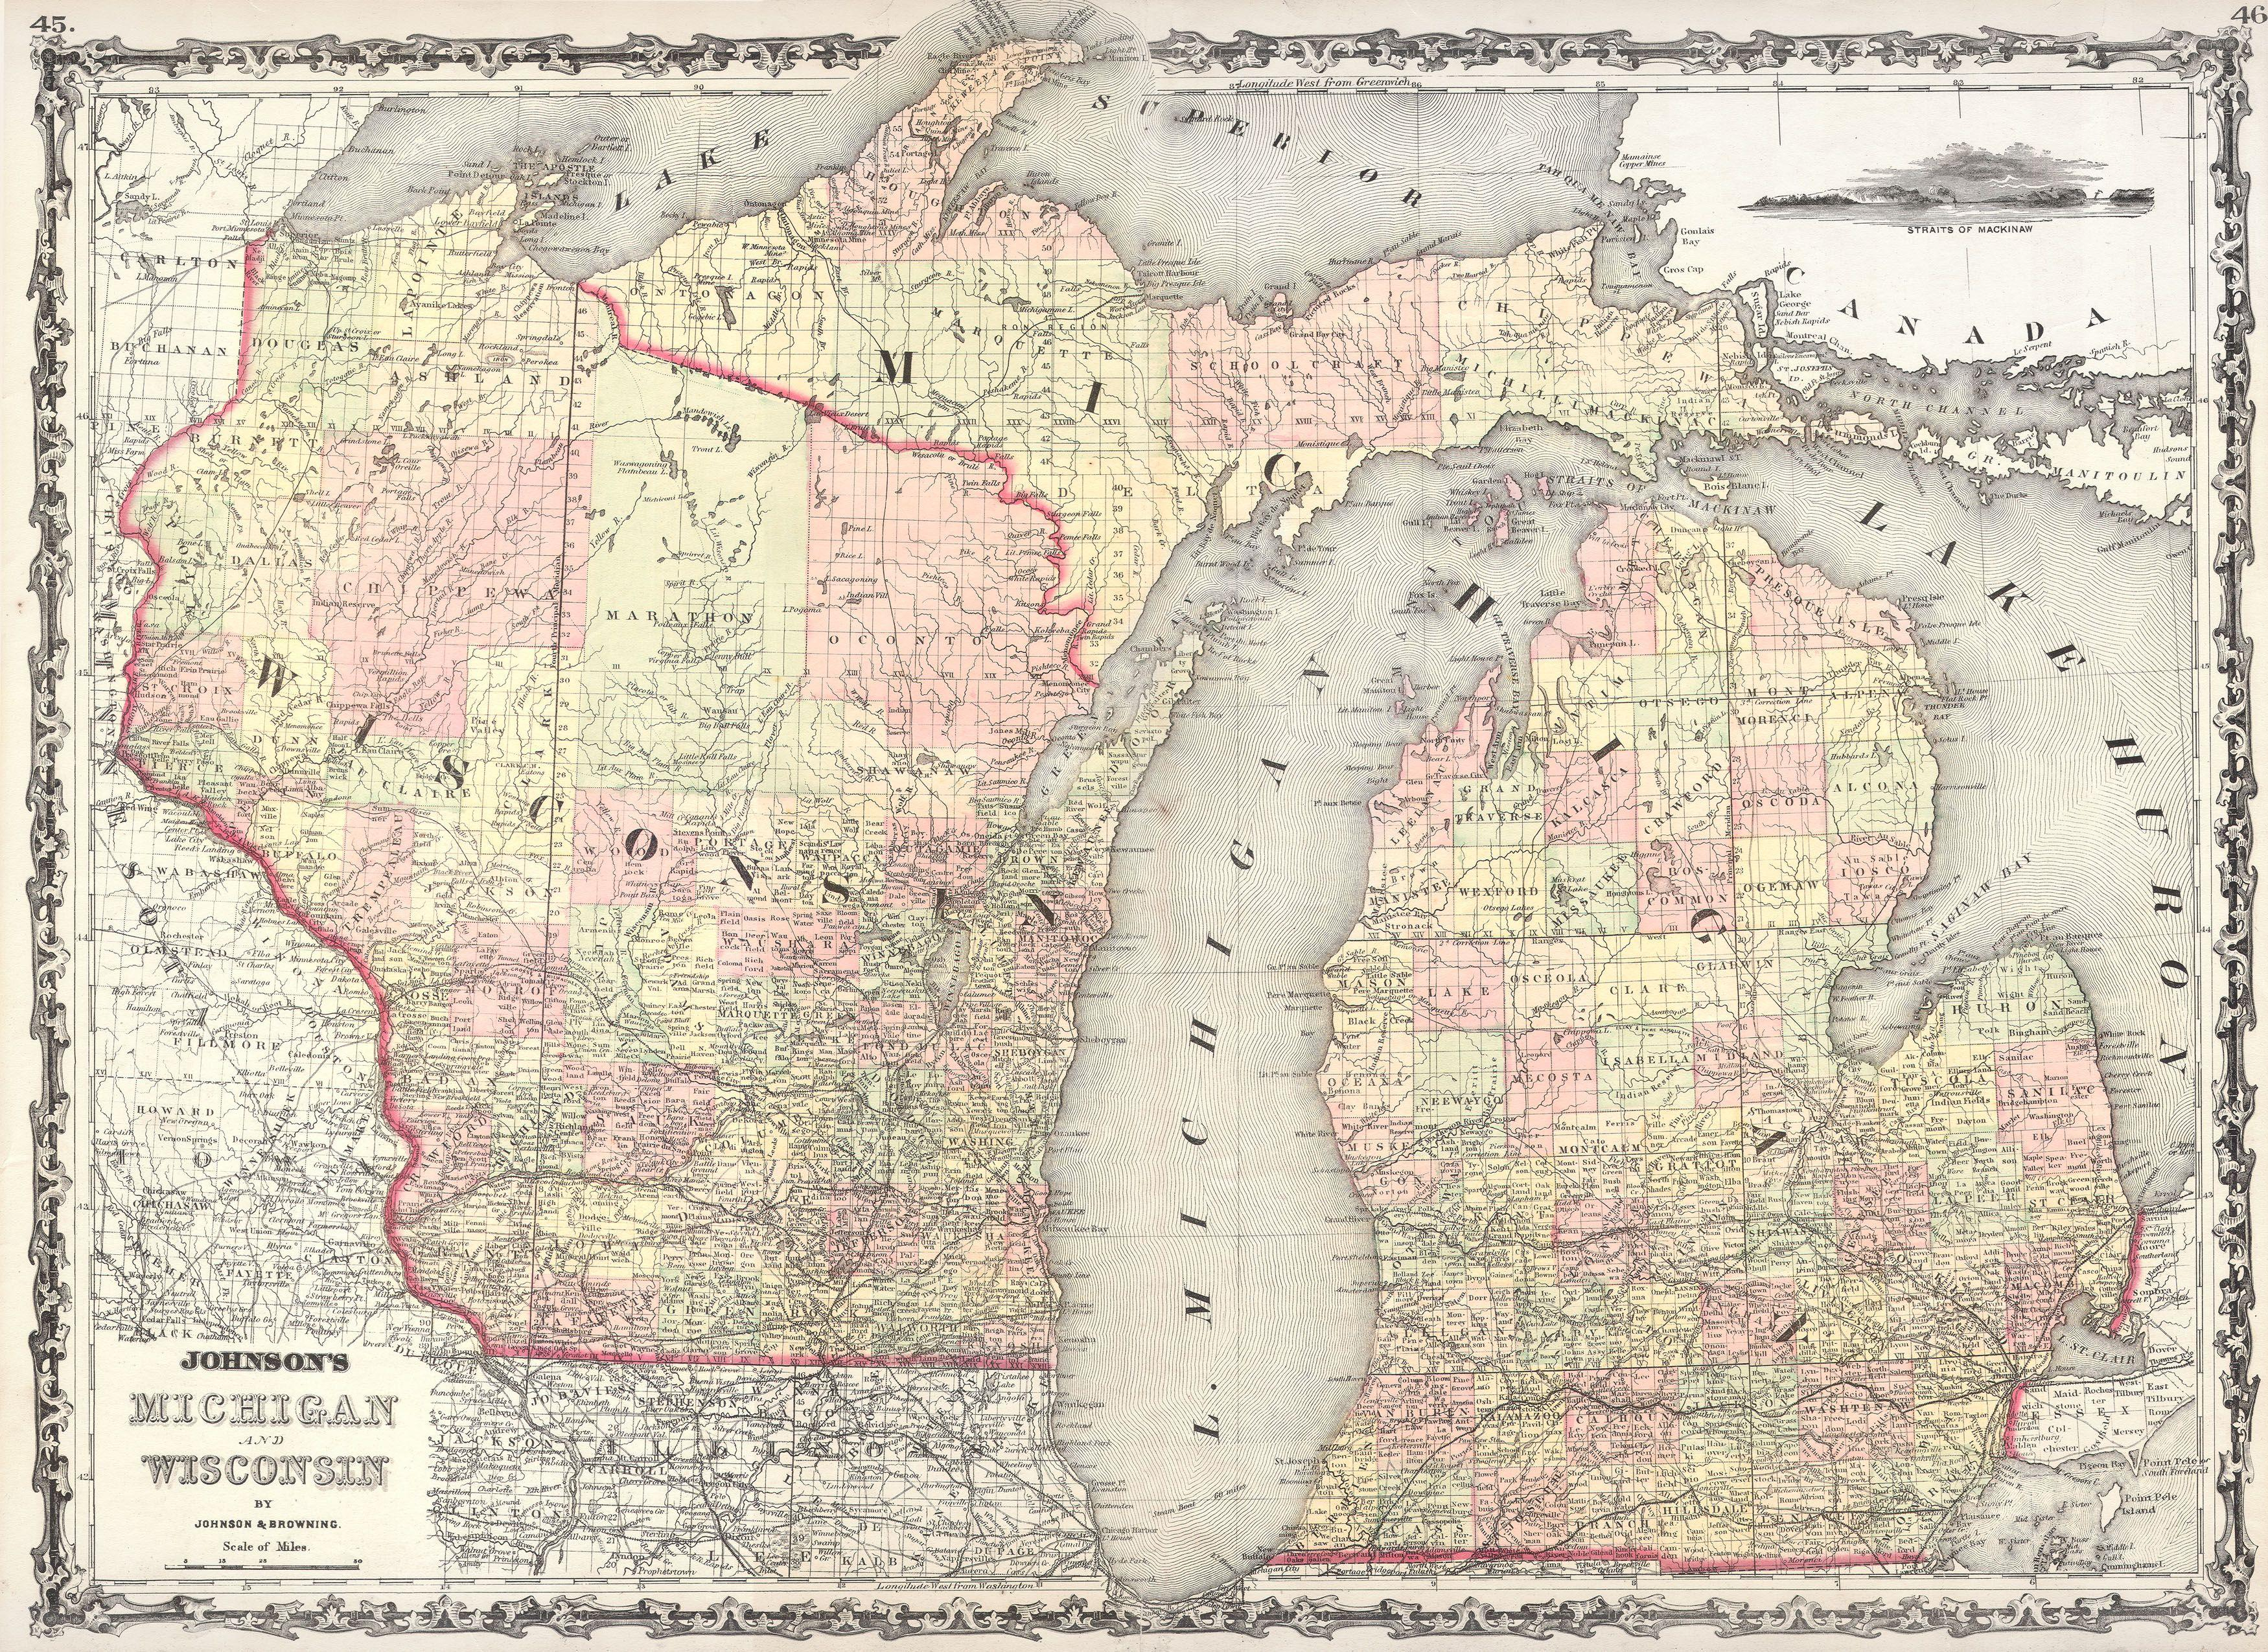 File:1862 Johnson Map of Wisconsin and Michigan   Geographicus